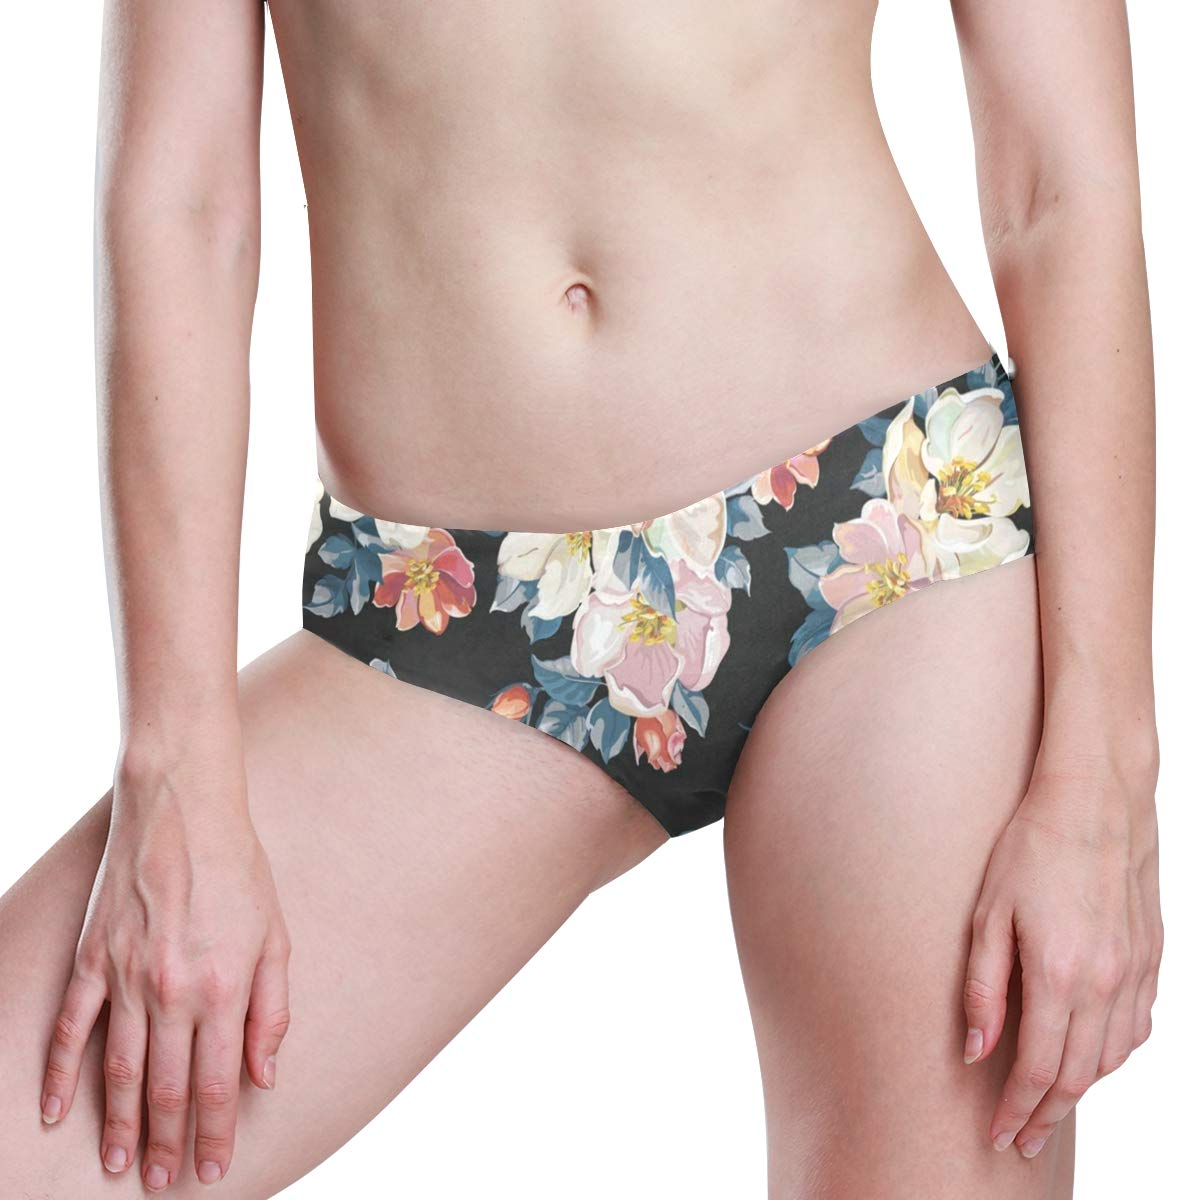 Vintage Floral Flowers Womens Seamless Underwear Invisible Bikini No Show Thong Panties